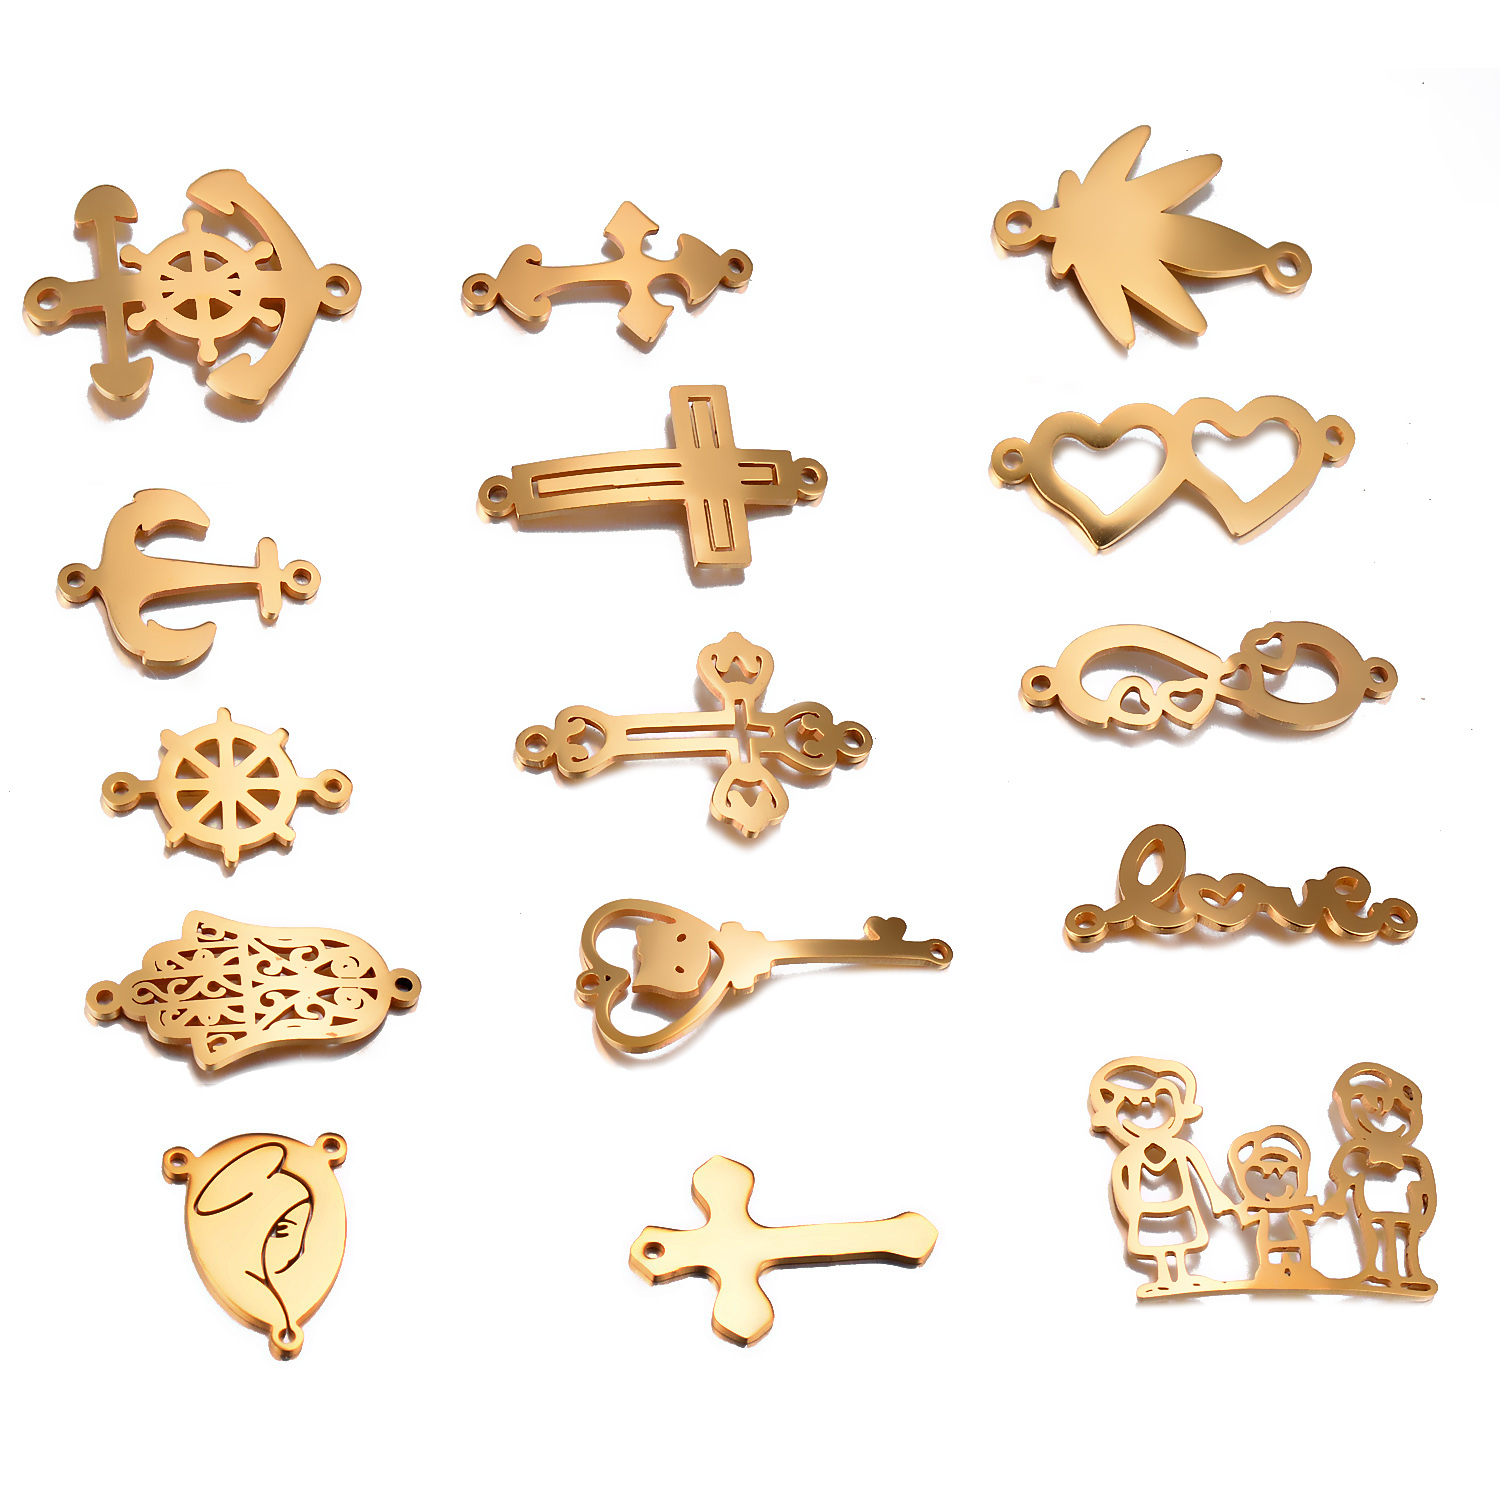 3pcs Stainless Steel Bracelet Charms Gold DIY Cross,Heart,Love,Hamsa Hand Accessory Finding Not Turn Off Color,Hypoallergenic